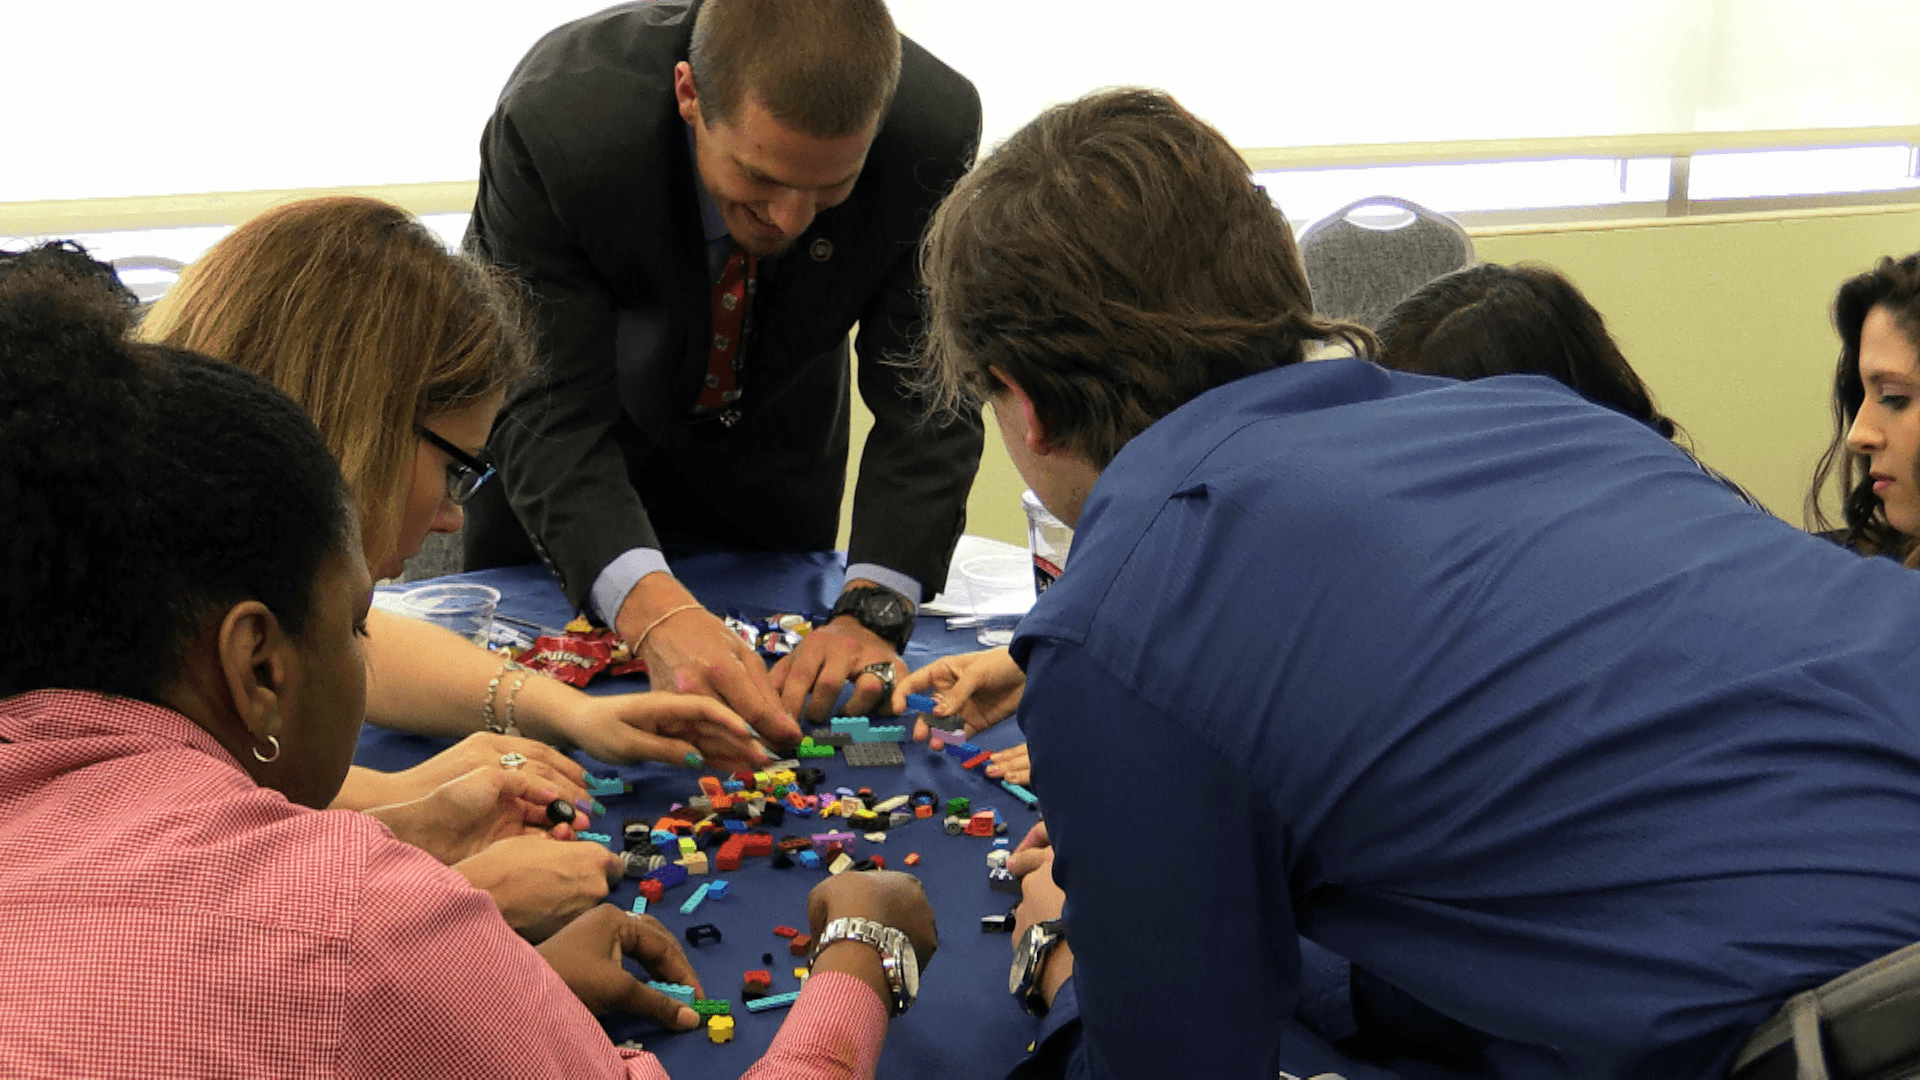 NSLS members problem solving with legos